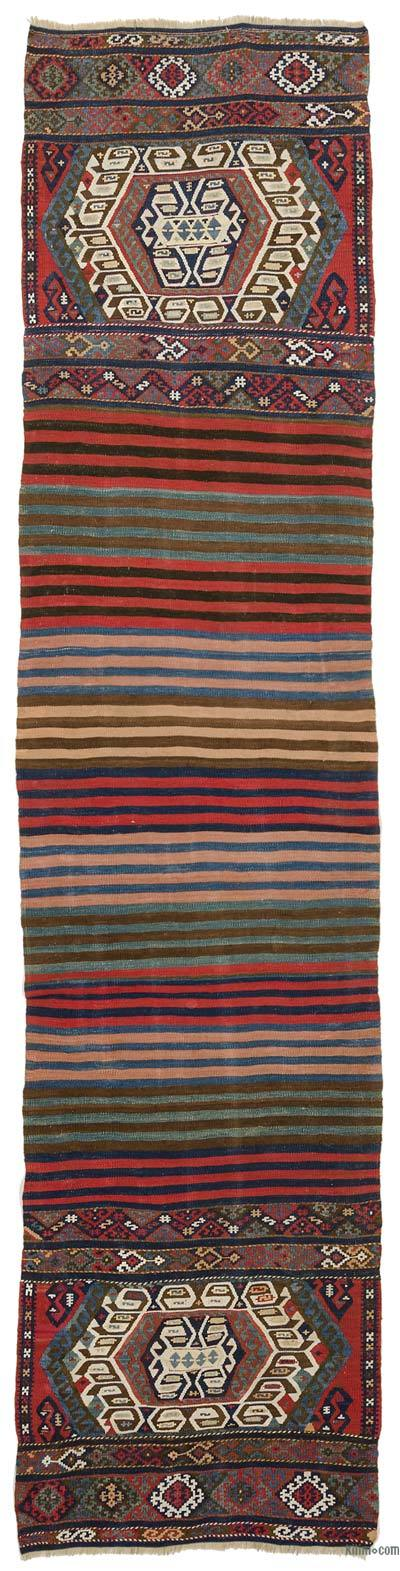 Antique Malatya Kilim Runner